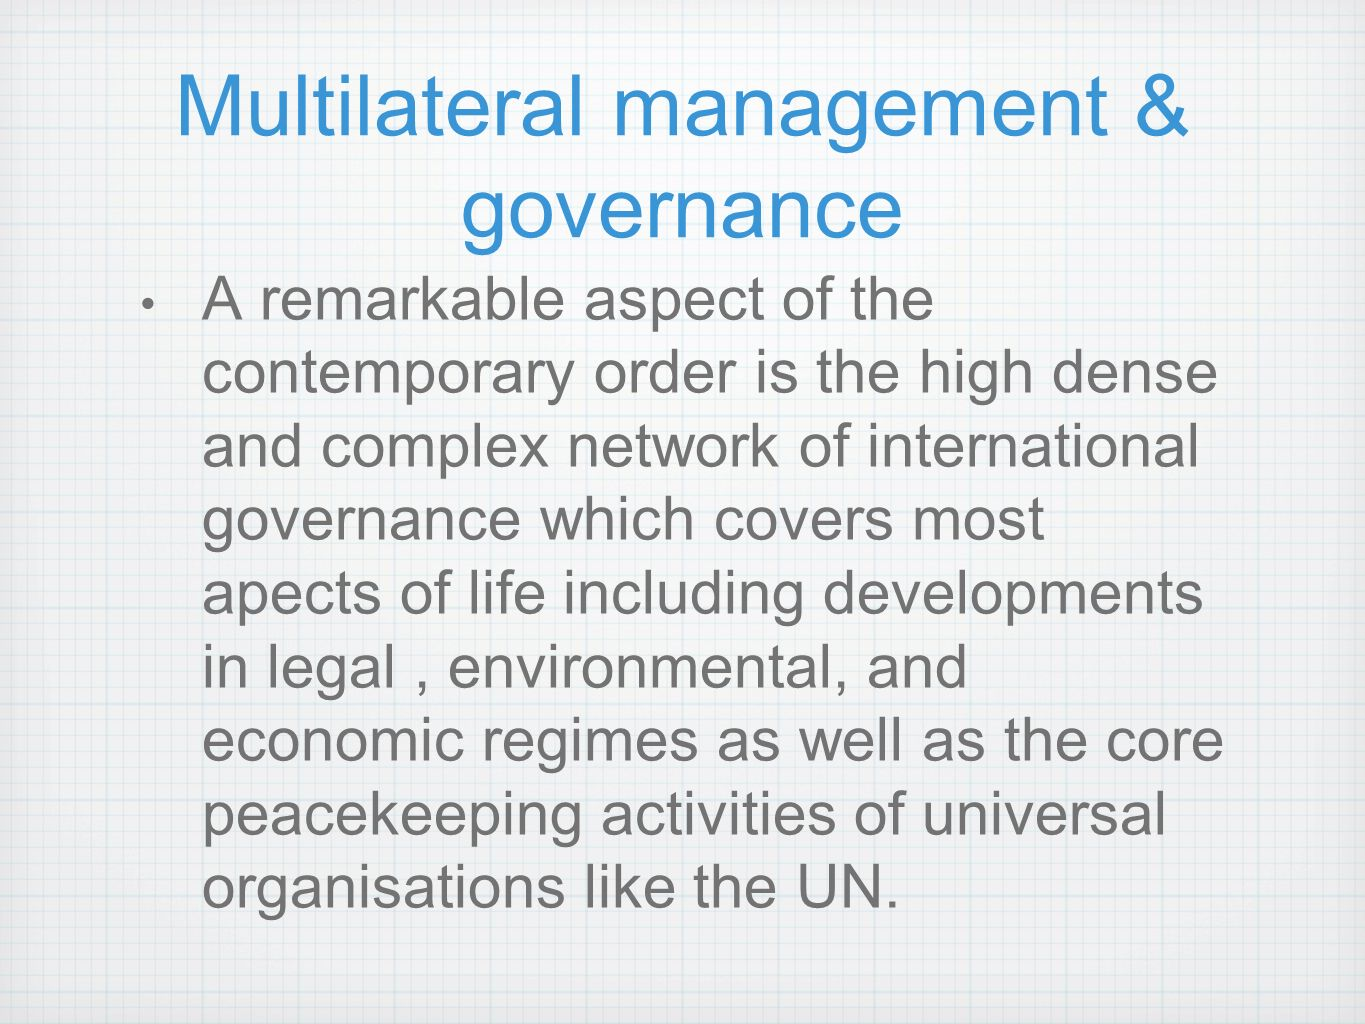 multilateral governance To understand multilateralism in foreign policy, it is crucial to understand how   by multilateral governance such as free trade, the law of the sea, and so on.